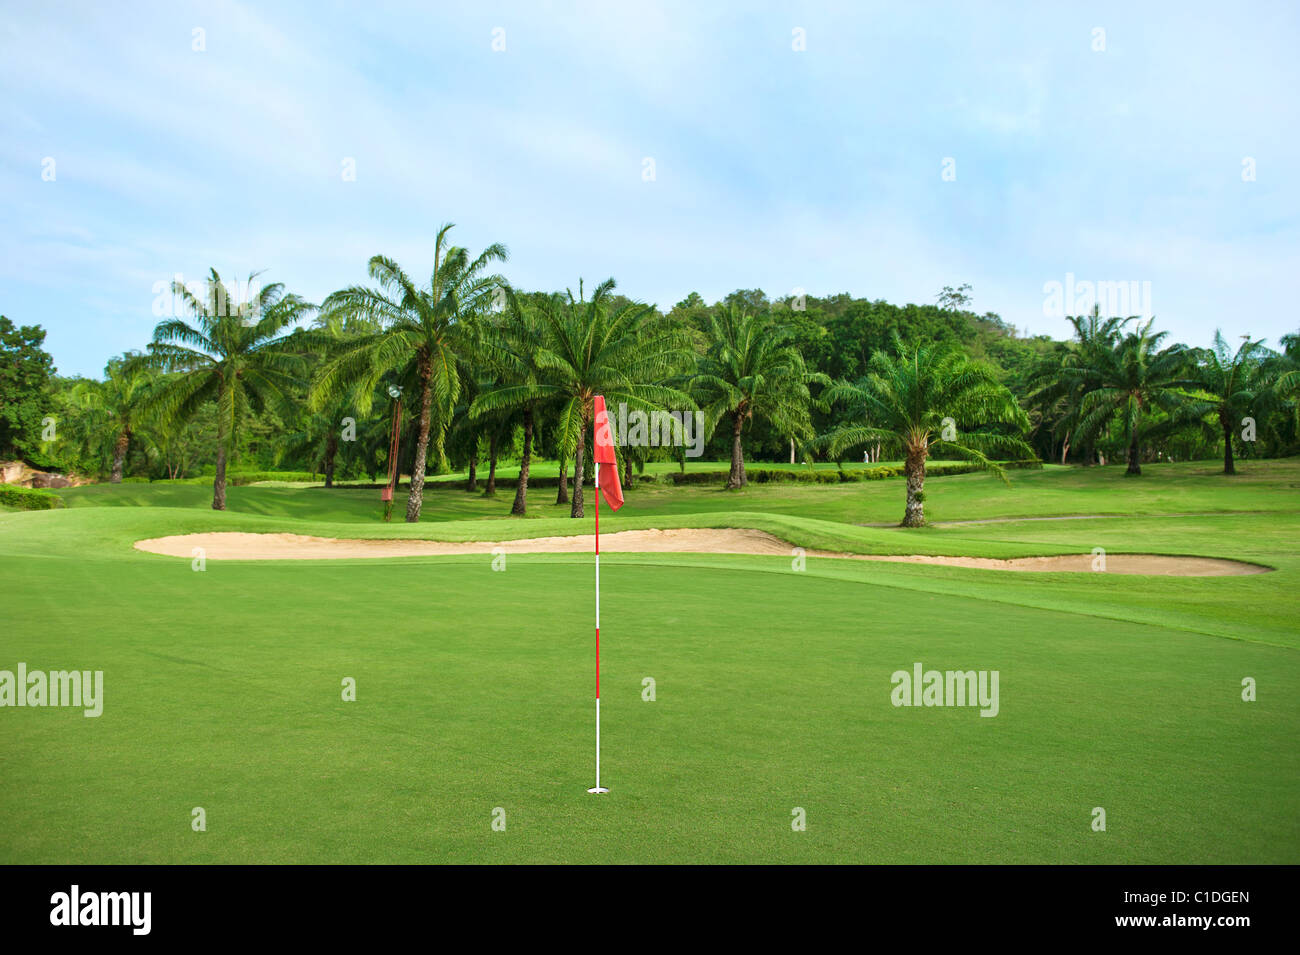 Golf field in Thailand, Hua Hin - Stock Image